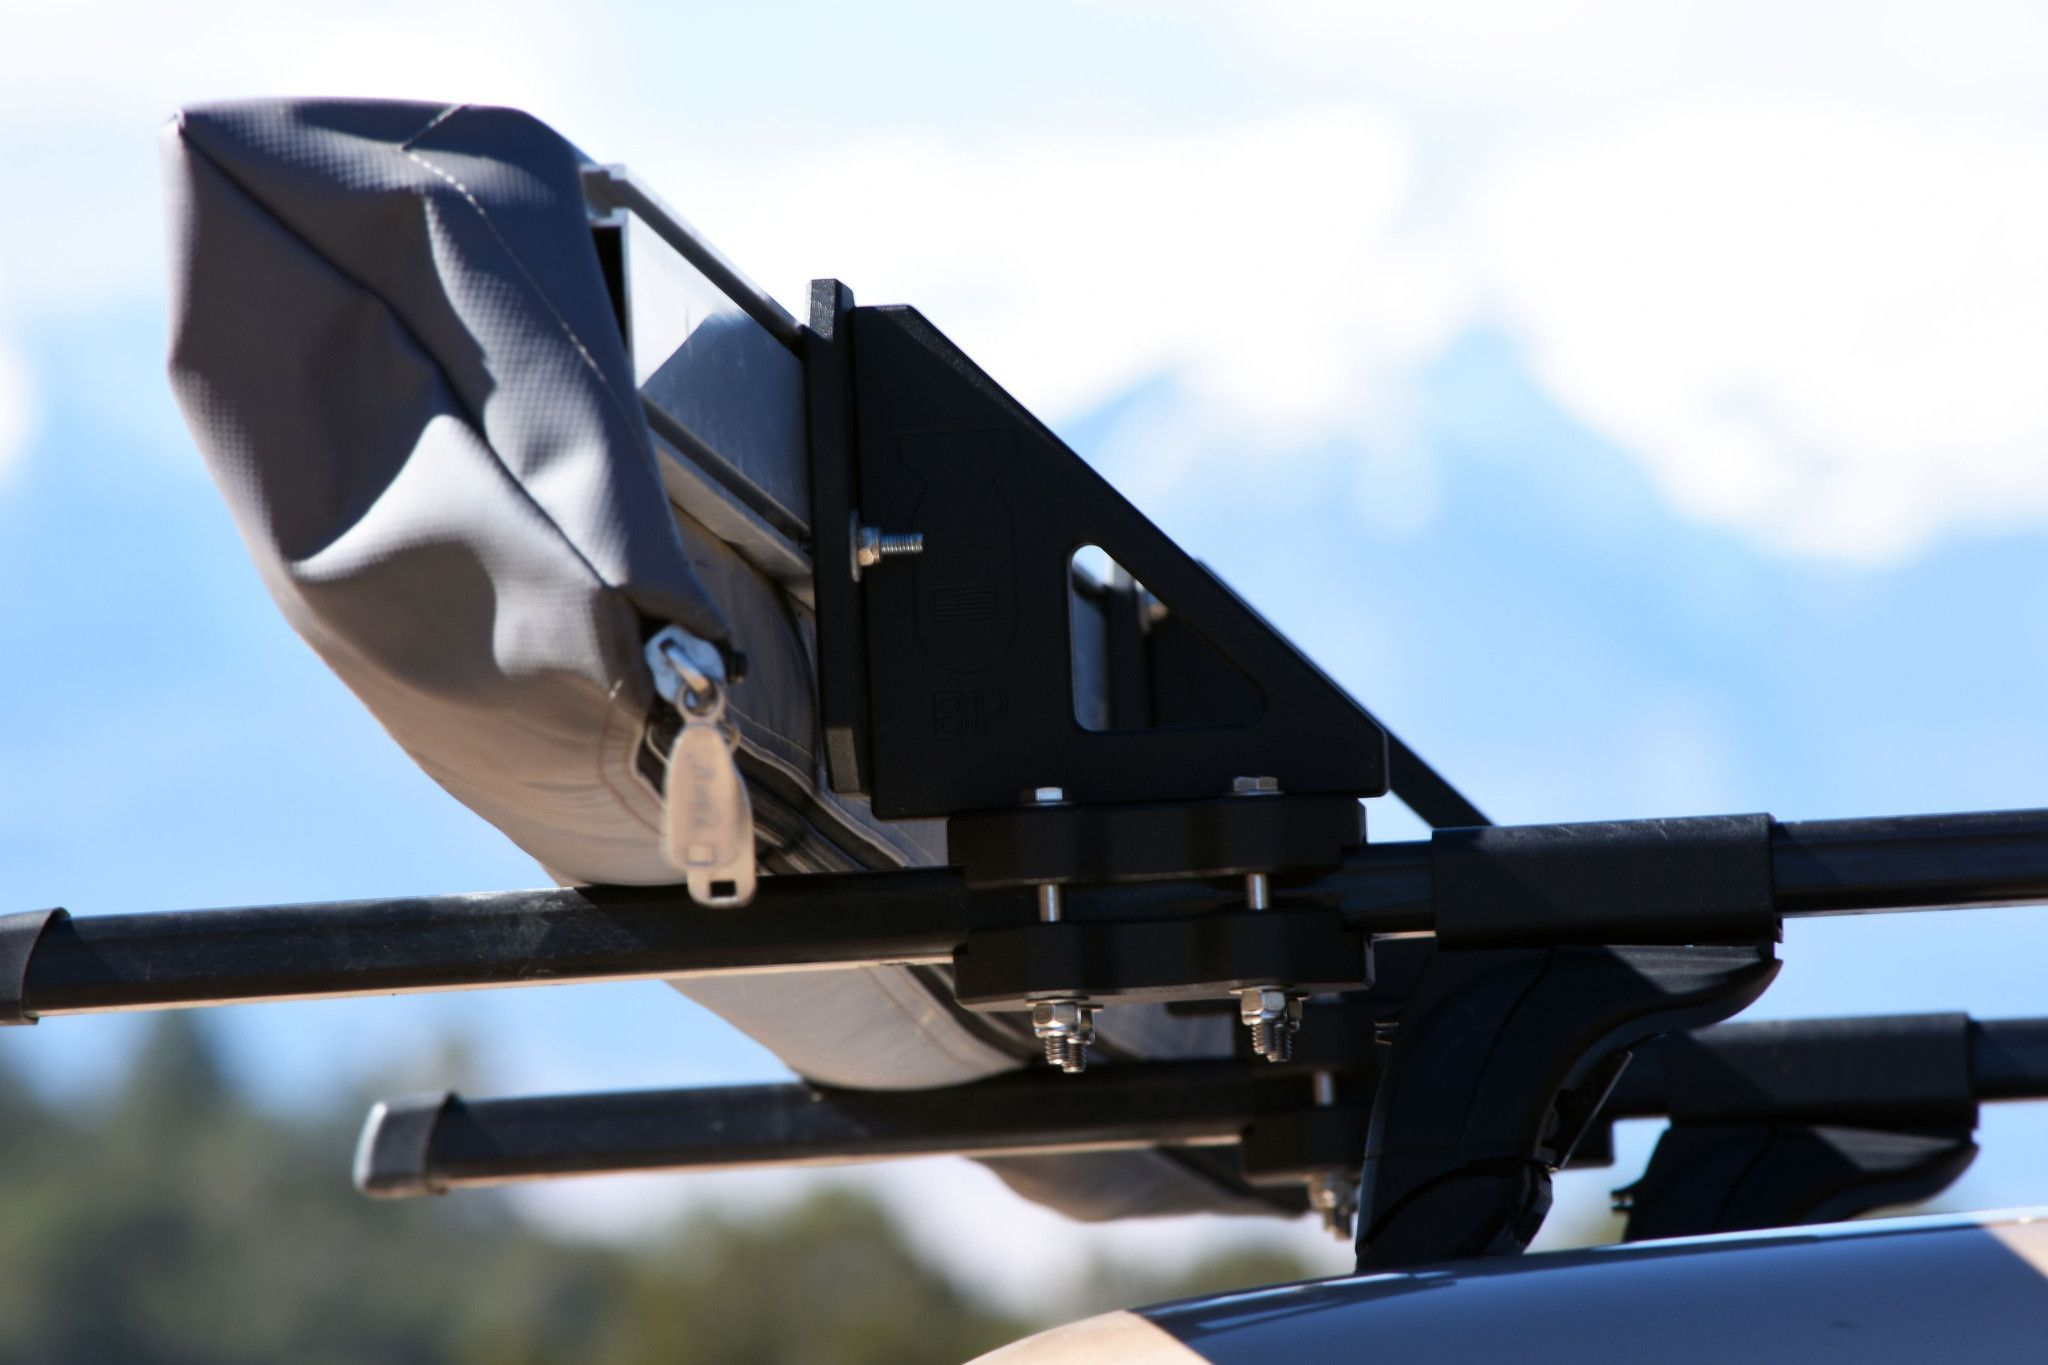 ARB 1250 Awning + AwnLock Outdoor, Fighter jets, Roof rack